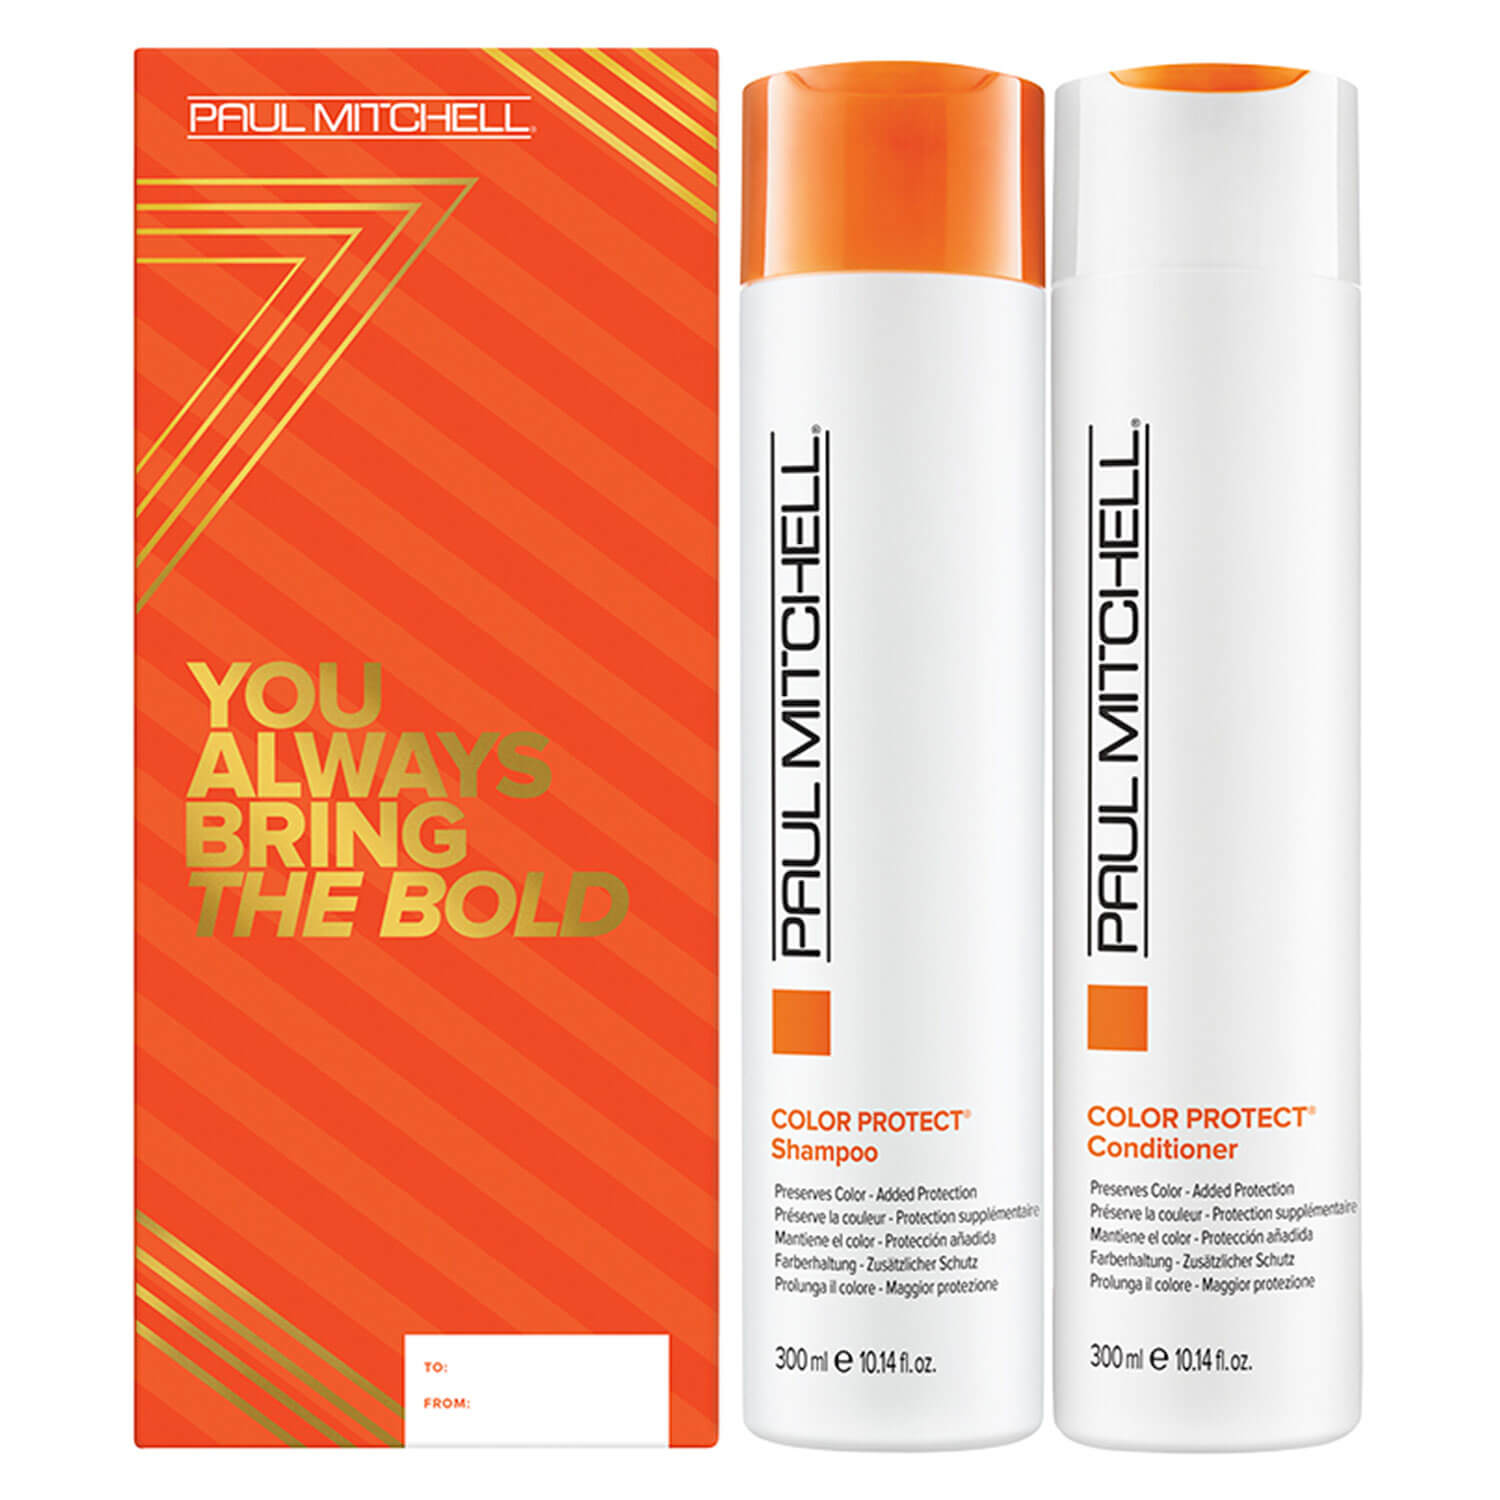 Color Care - You Always Bring The Bold Set